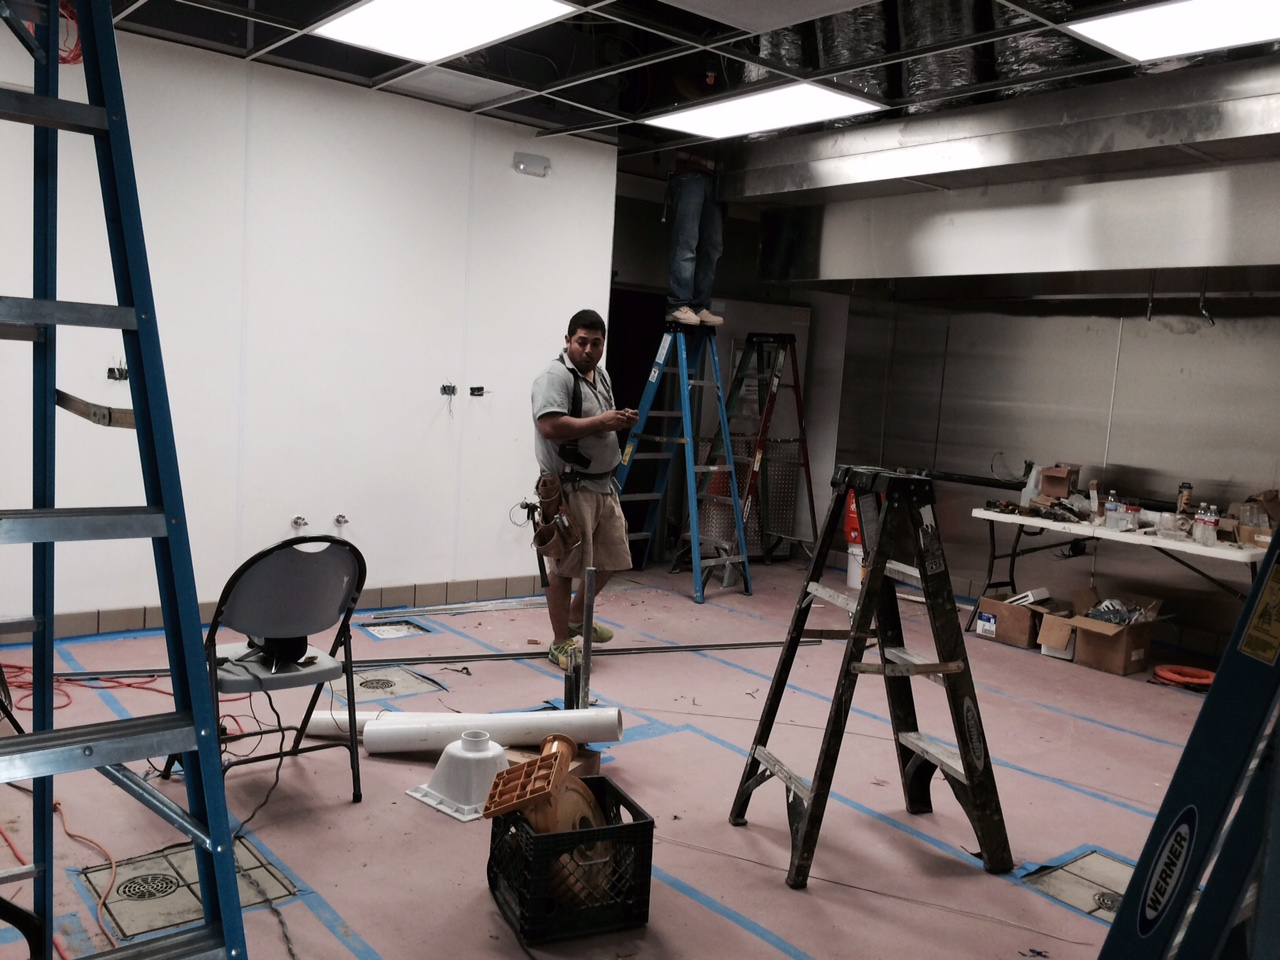 Restaurant Post Construction Cleaning Service in Houston, Texas